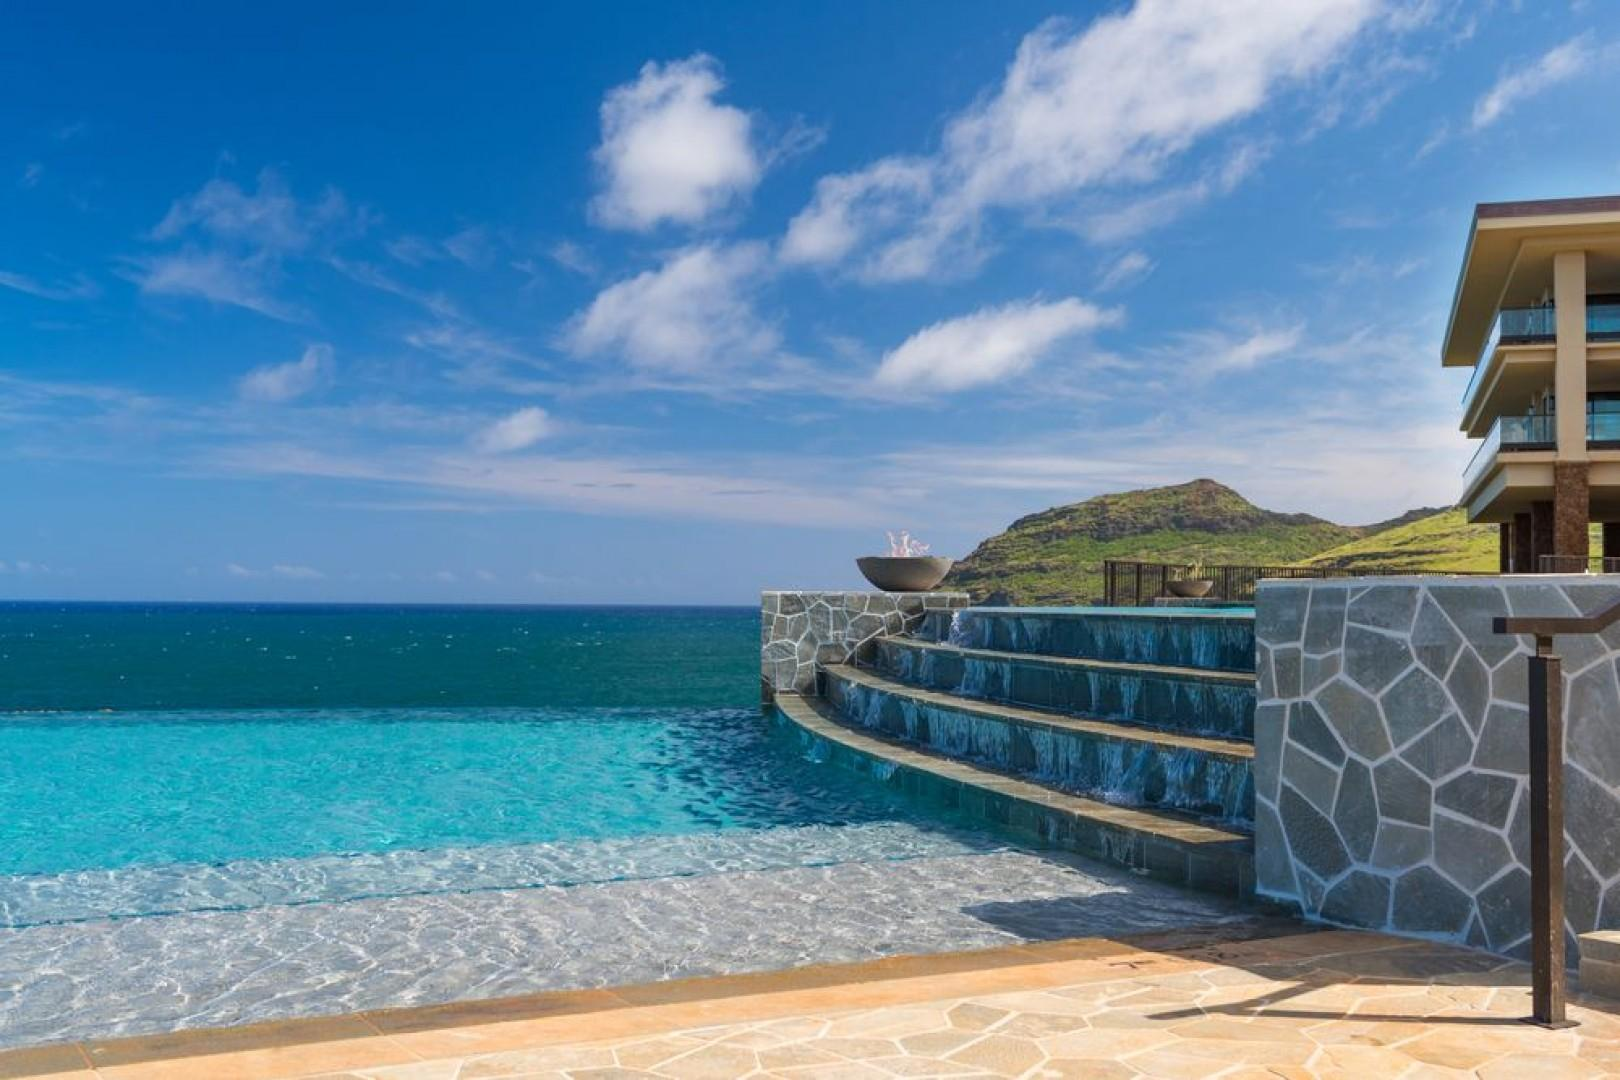 The two-tier, infinity-edge Kaiholo pool seems to flow right into the ocean.